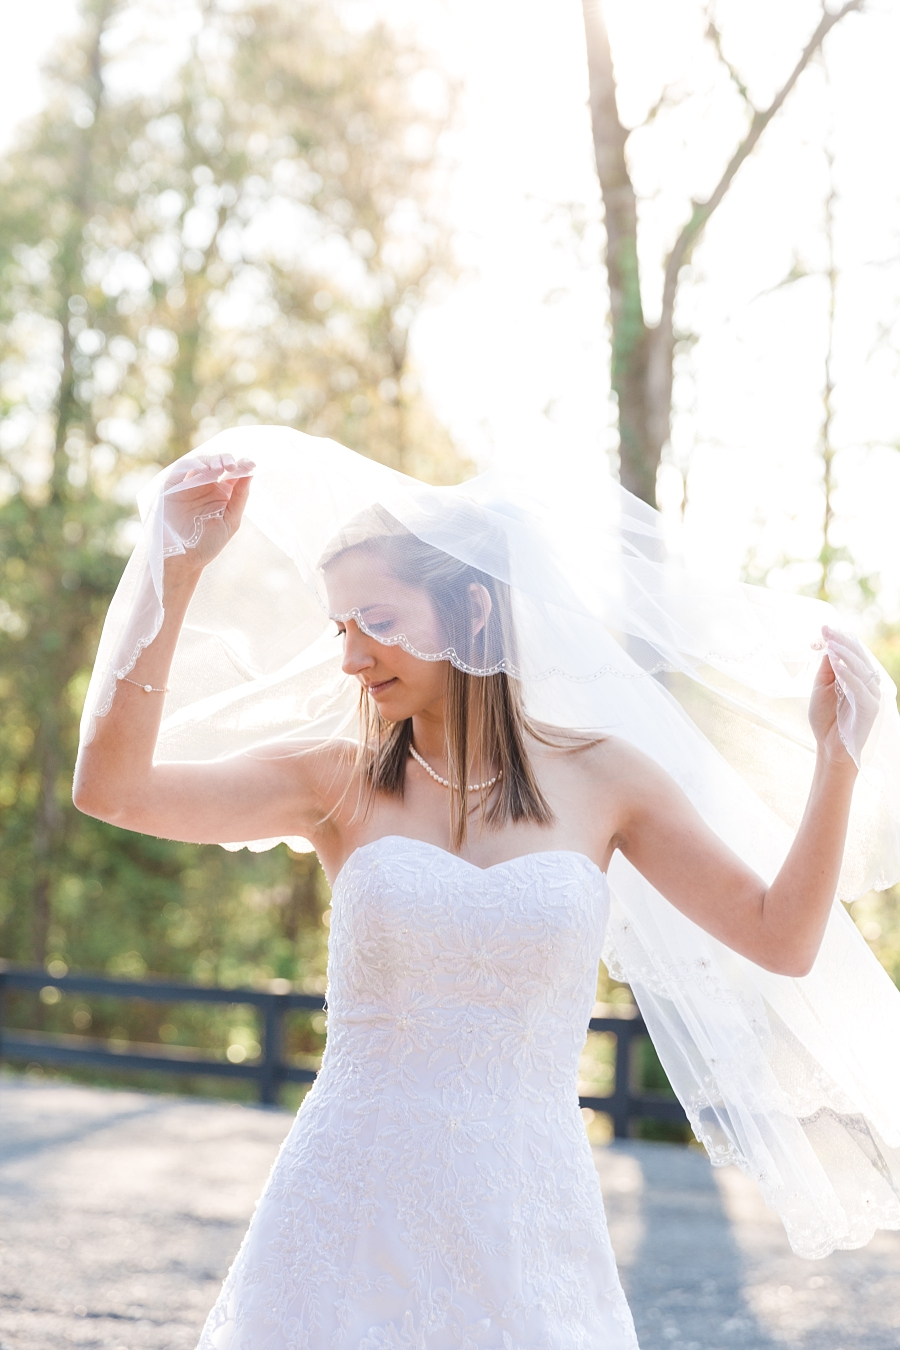 Stacy-Anderson-Photography-Carriage-House-Houston-Wedding-Photographer_0031.jpg